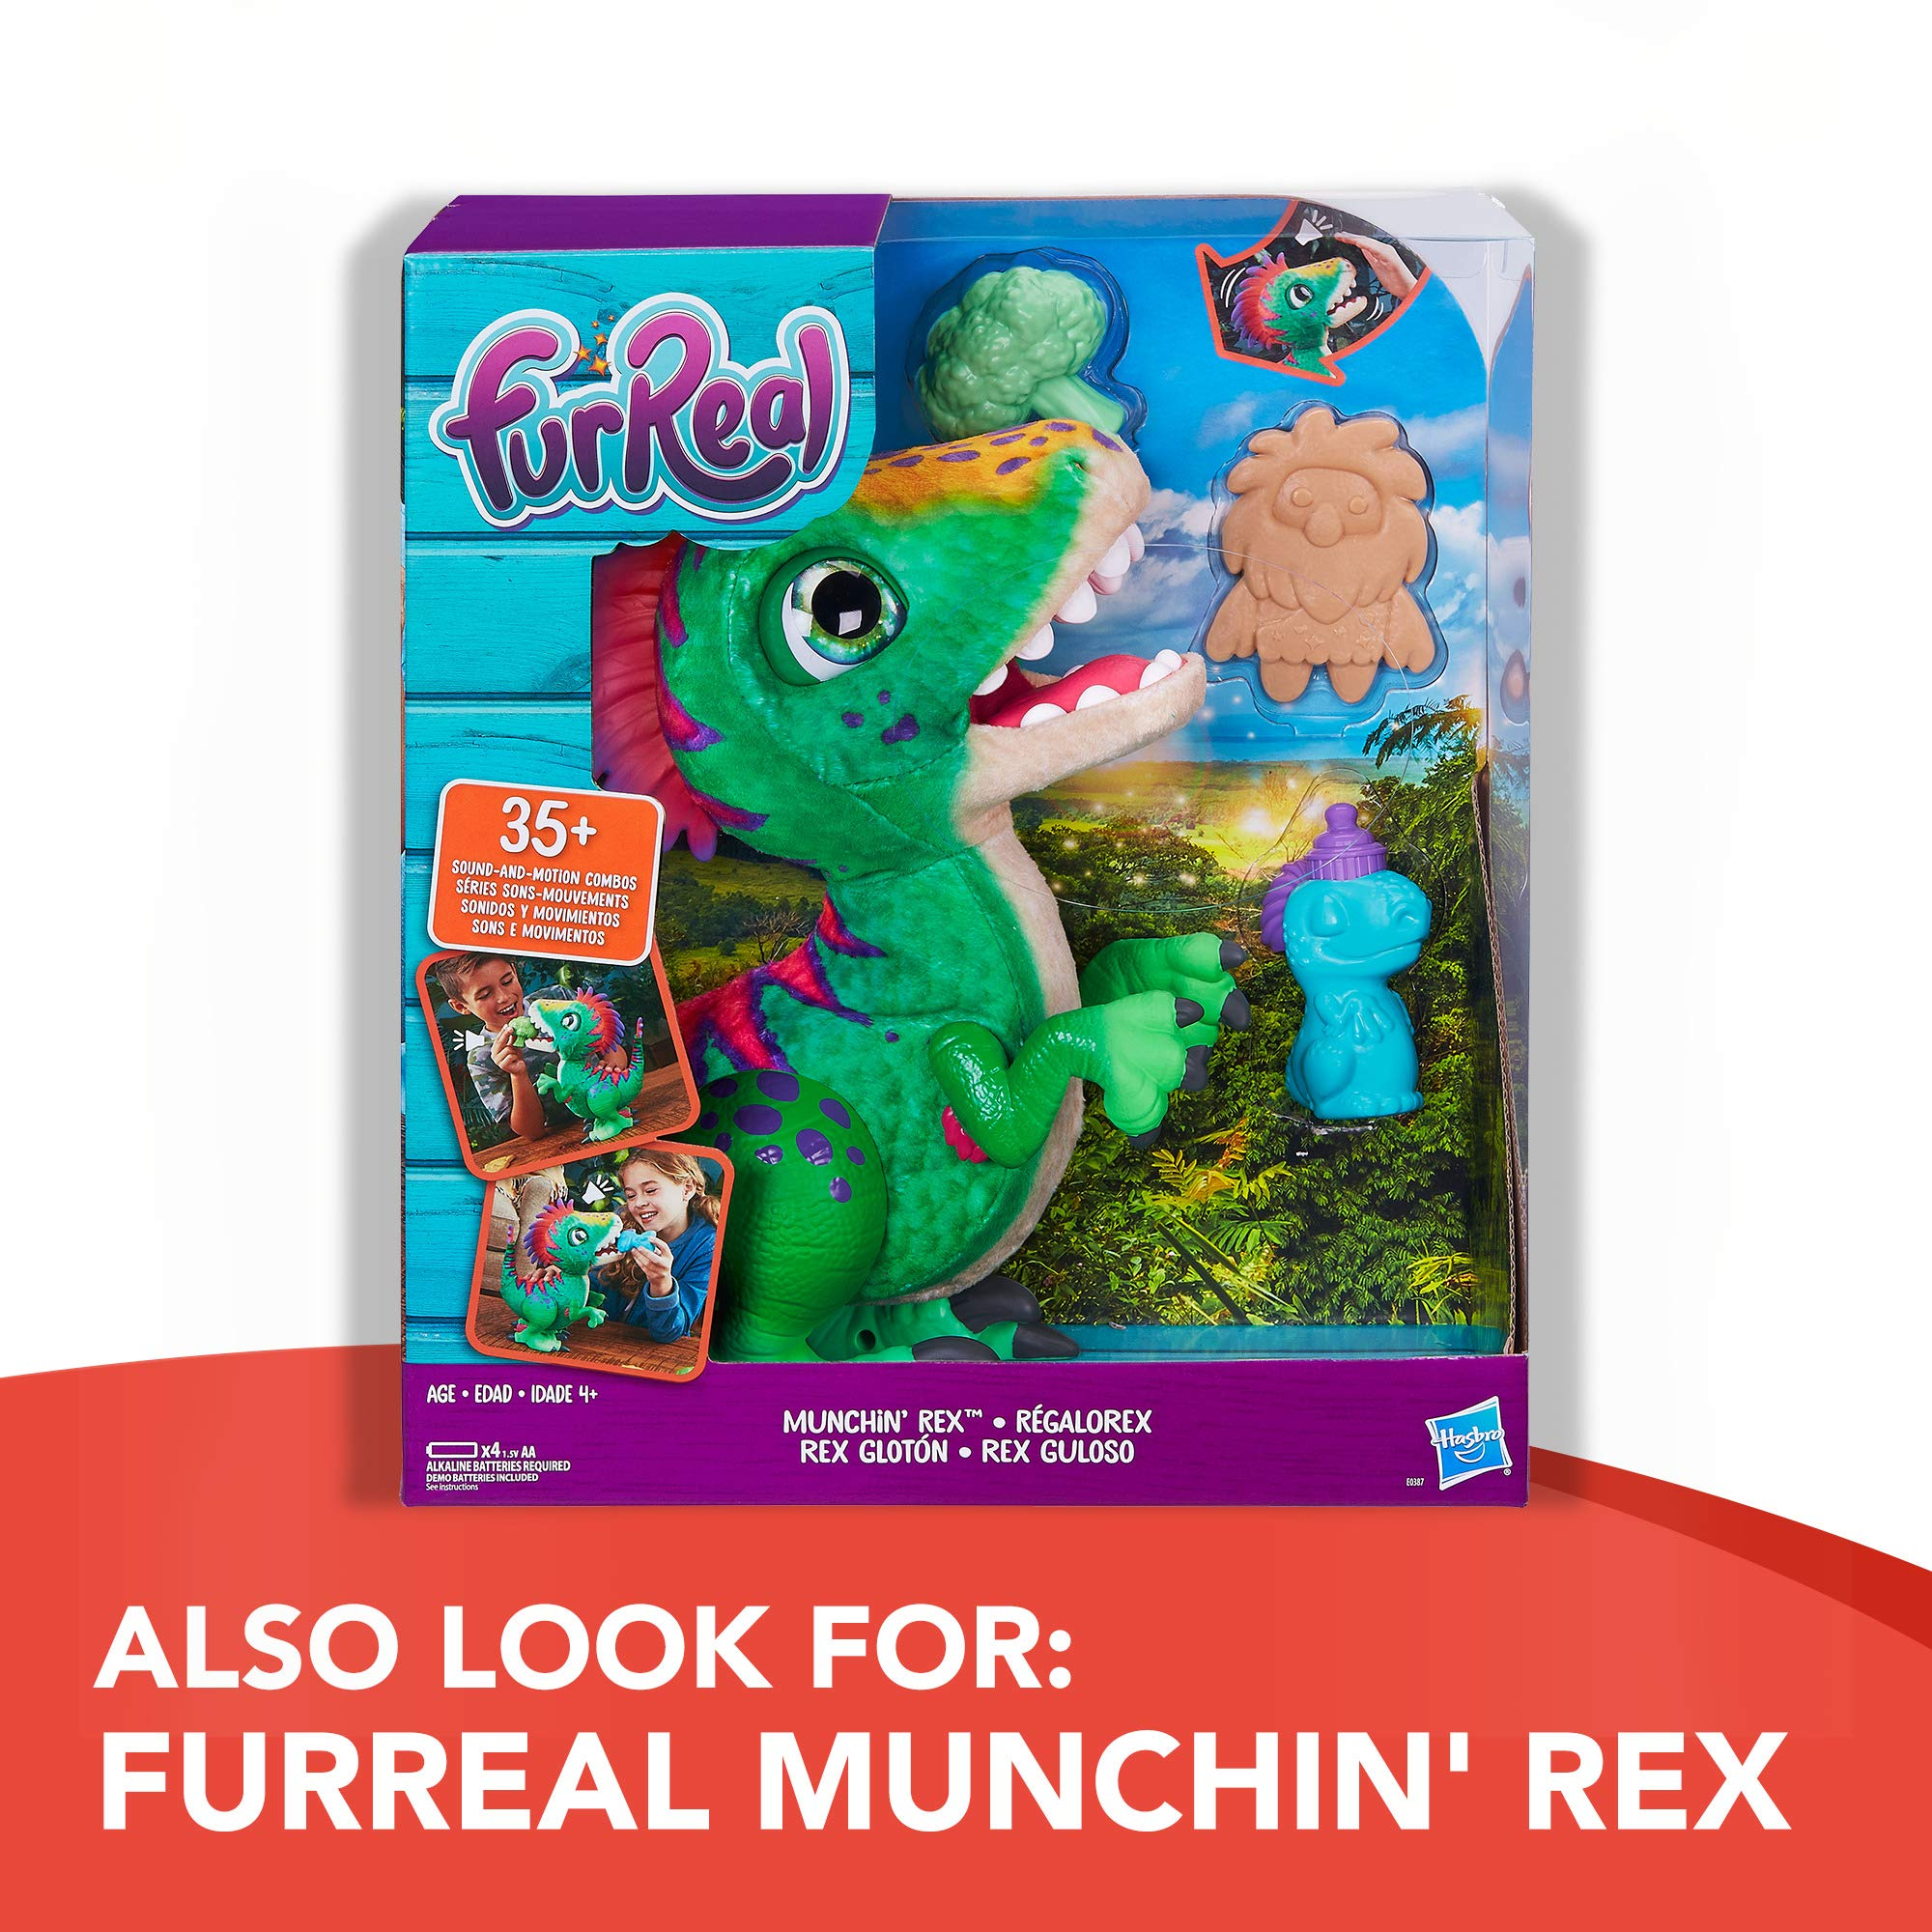 FurReal Friends Ricky, the Trick-Lovin' Interactive Plush Pet Toy, 100+ Sound-and-Motion Combinations, Ages 4 and Up by FurReal (Image #6)